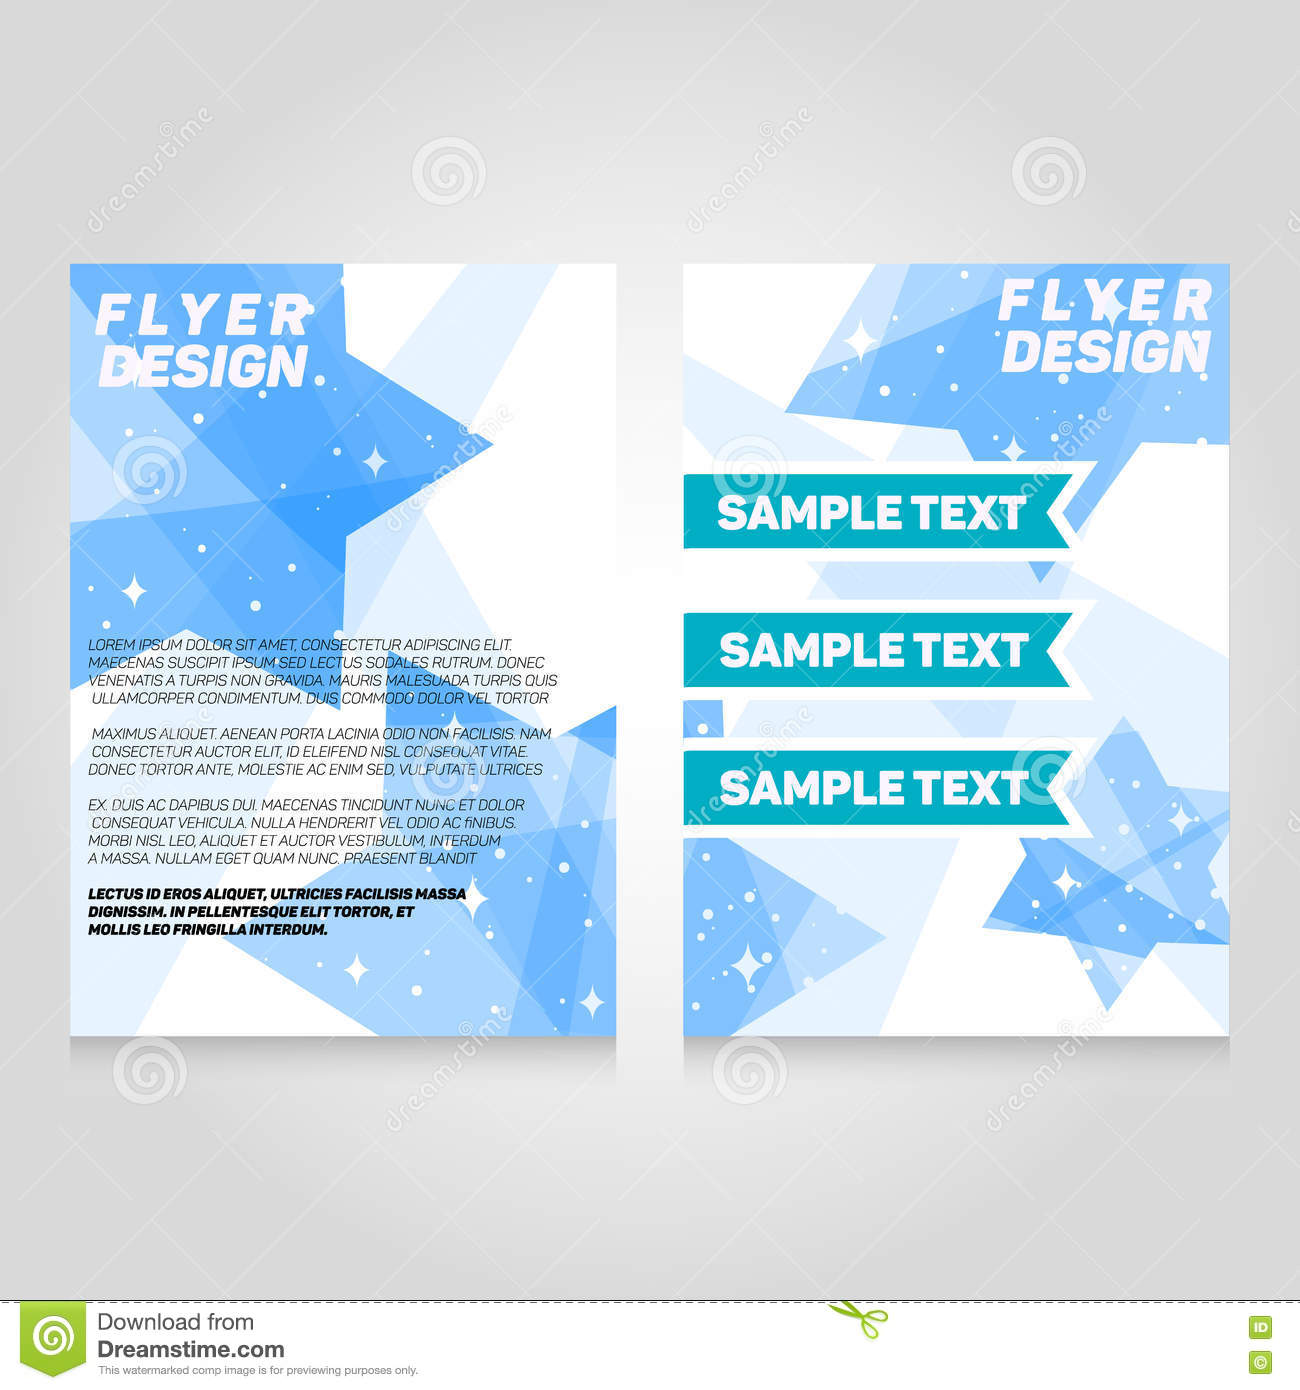 Brochure flier design template. Vector concert poster illustration.